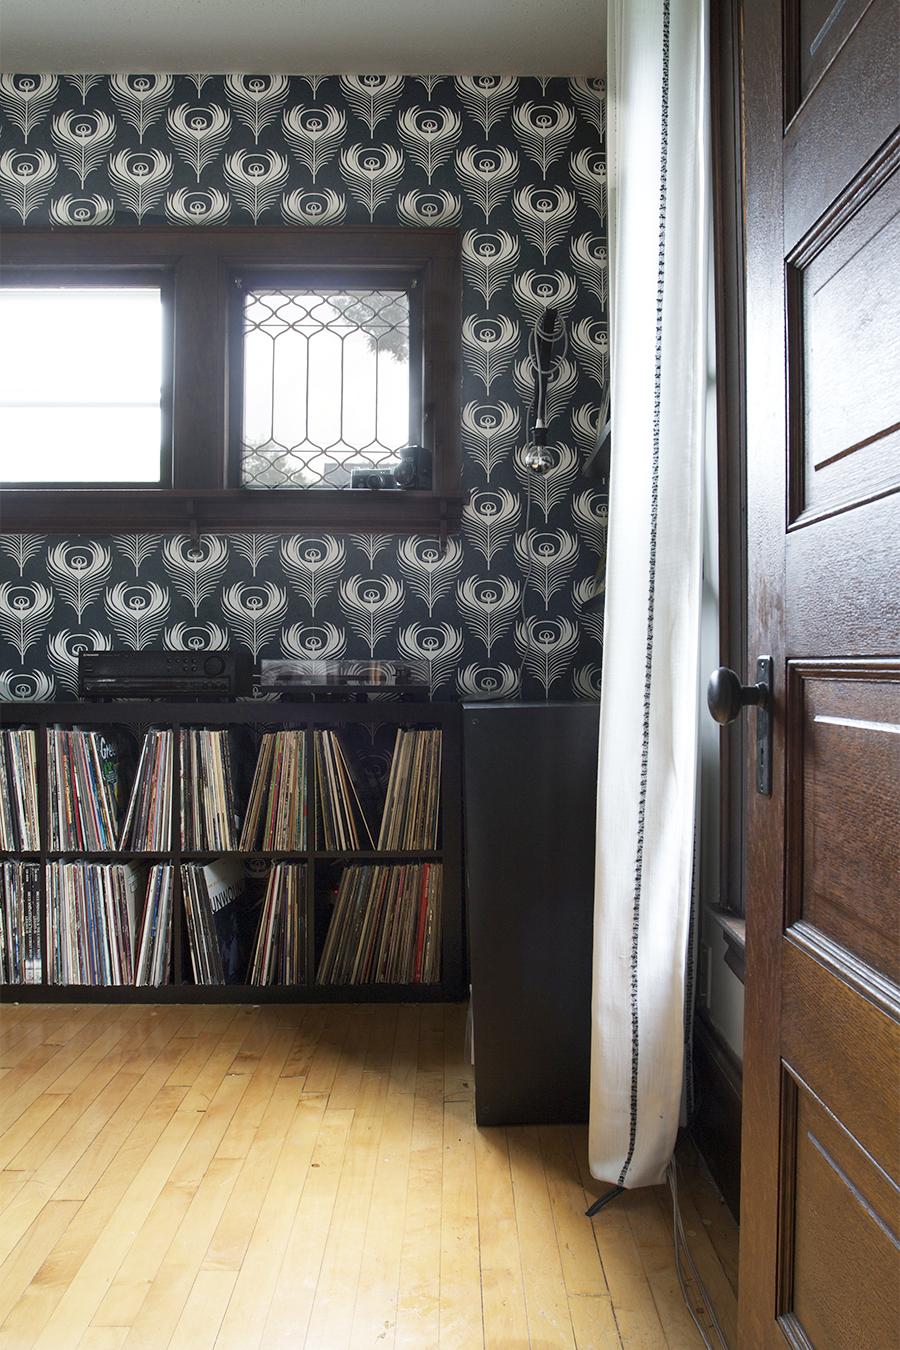 Piano & Record Room